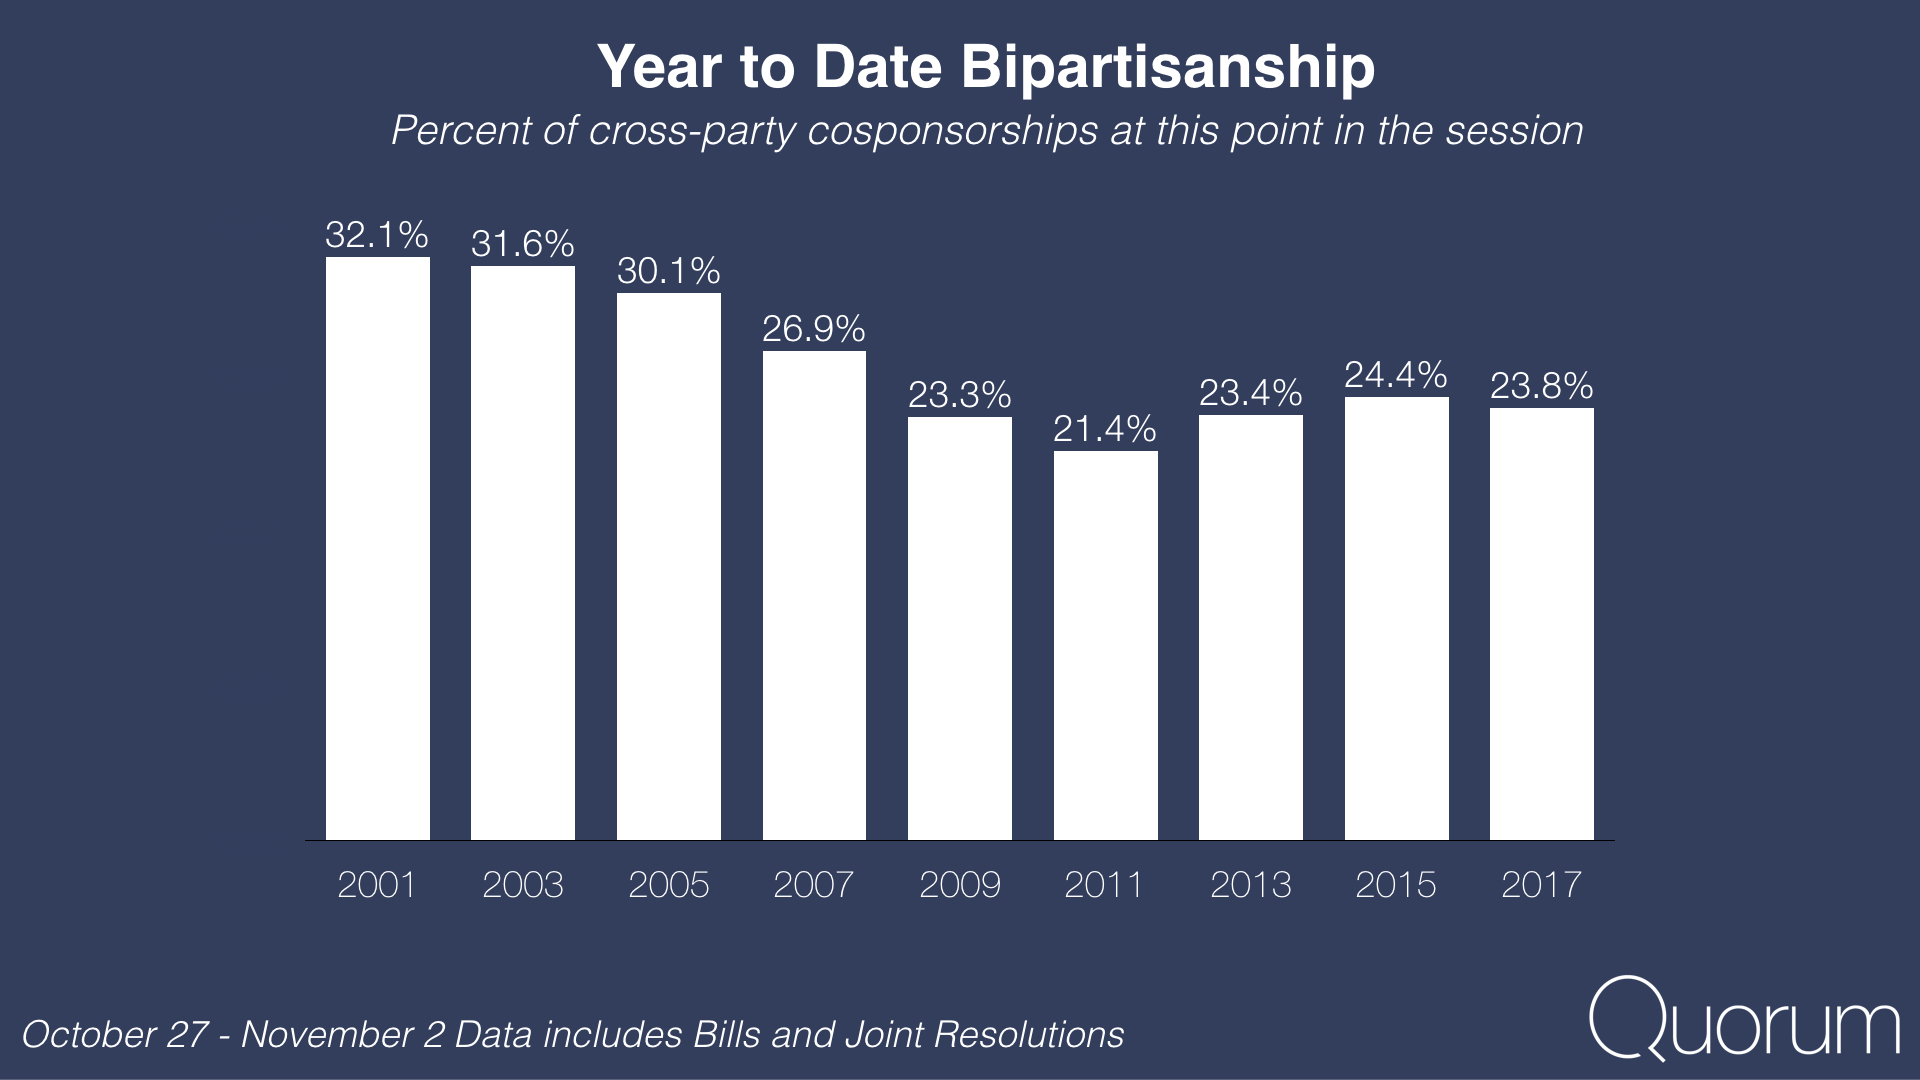 Year to date bipartisanship.